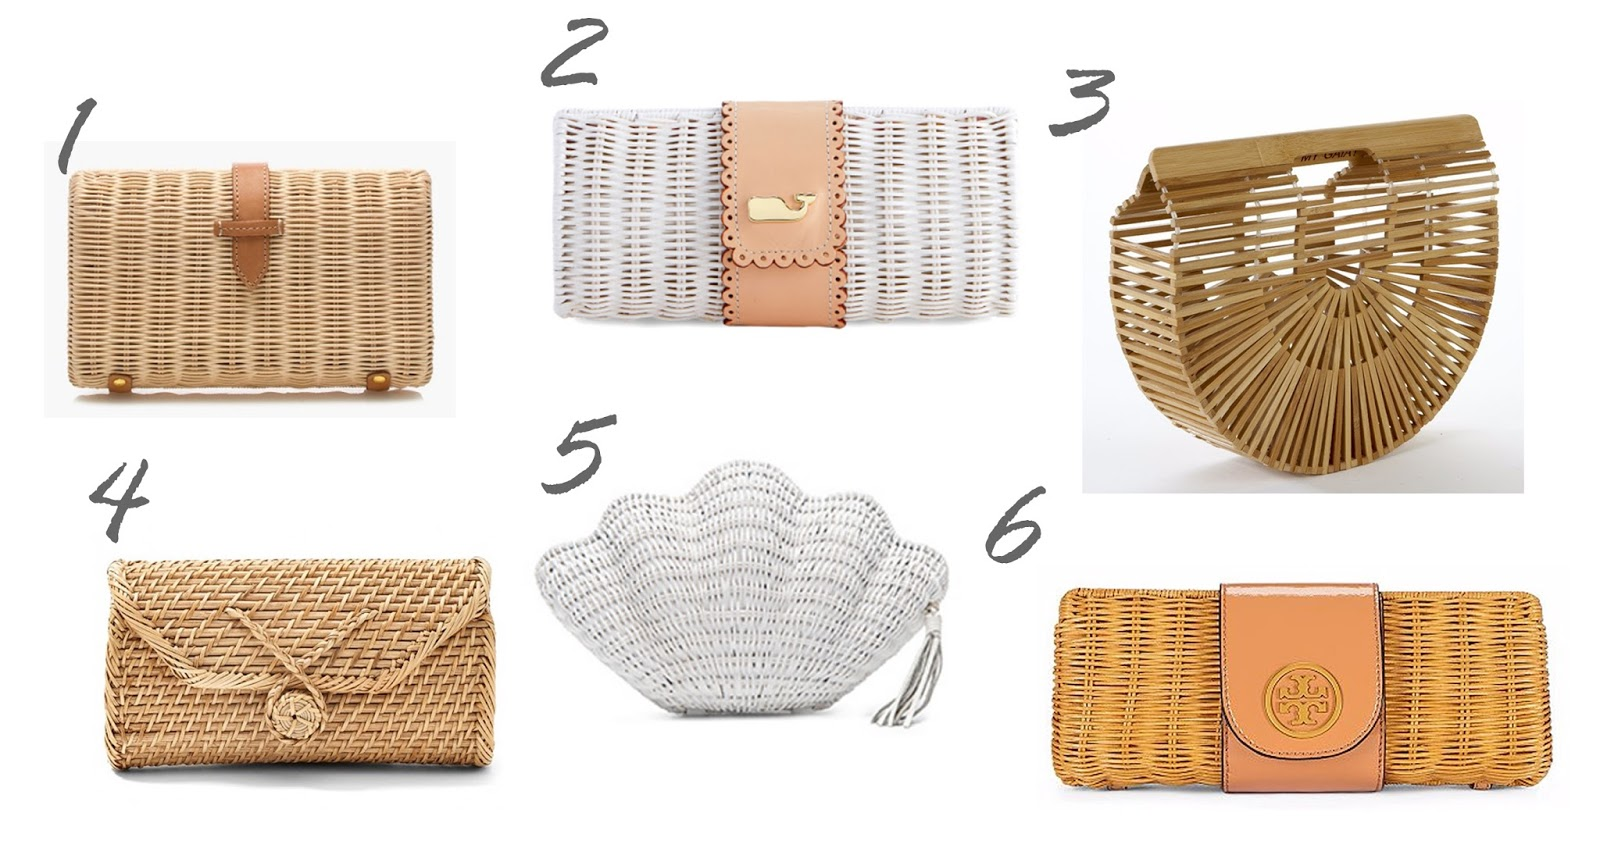 J. Crew handbags, Vineyard Vines handbags, wicker clutch, straw clutches, wicker clutches and rattan clutches